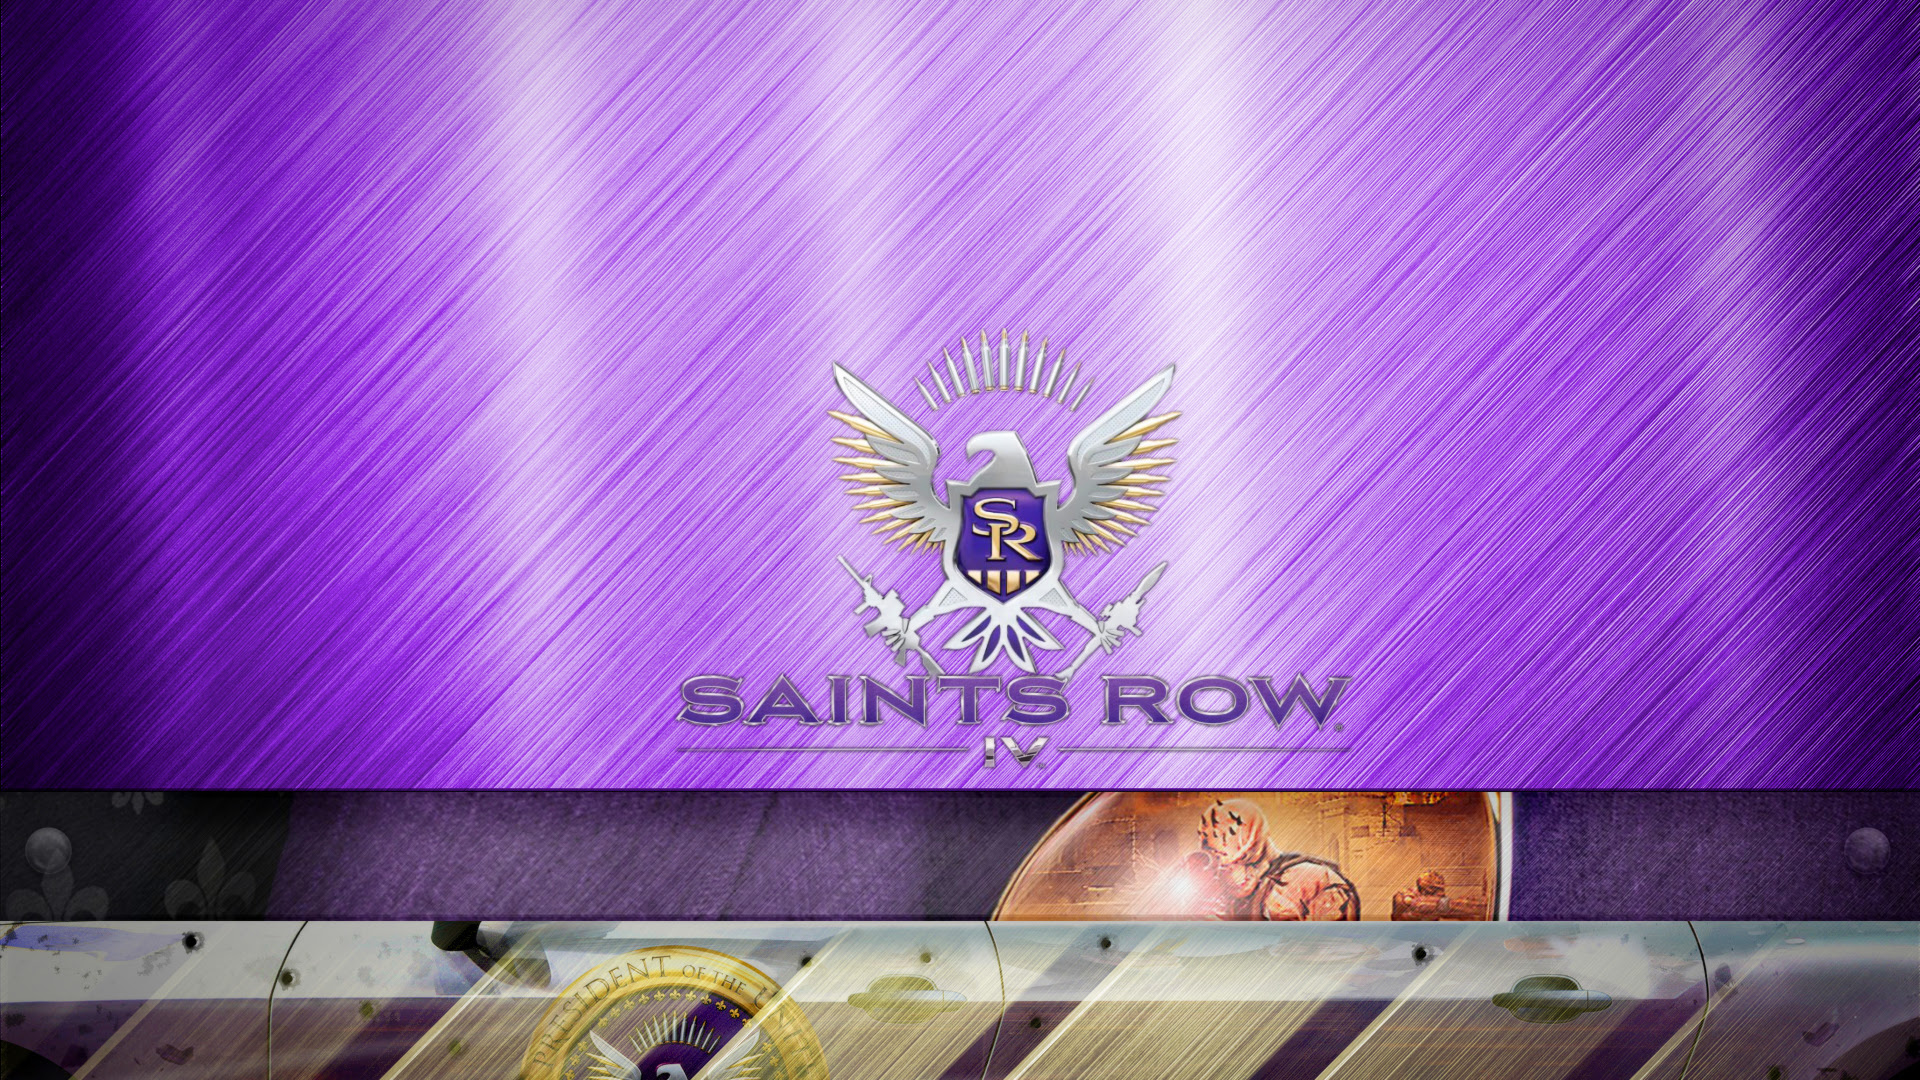 Saints Row 4 Wallpaper By Binary Map On Deviantart